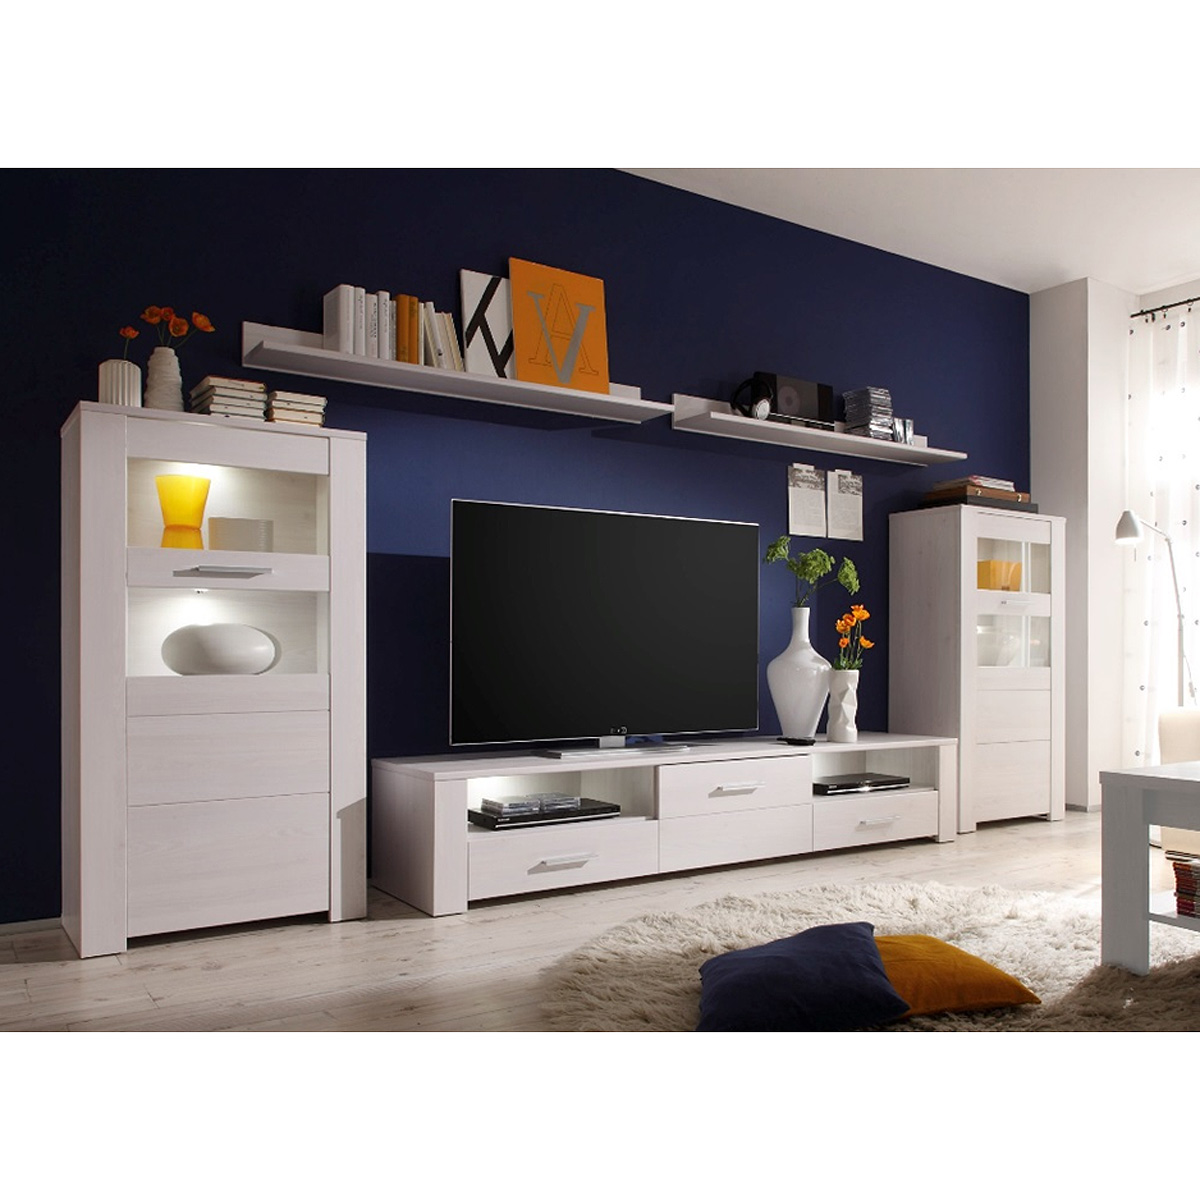 wohnwand 1 time anbauwand wohnkombi wohnzimmer in sibiu l rche wei mit led ebay. Black Bedroom Furniture Sets. Home Design Ideas